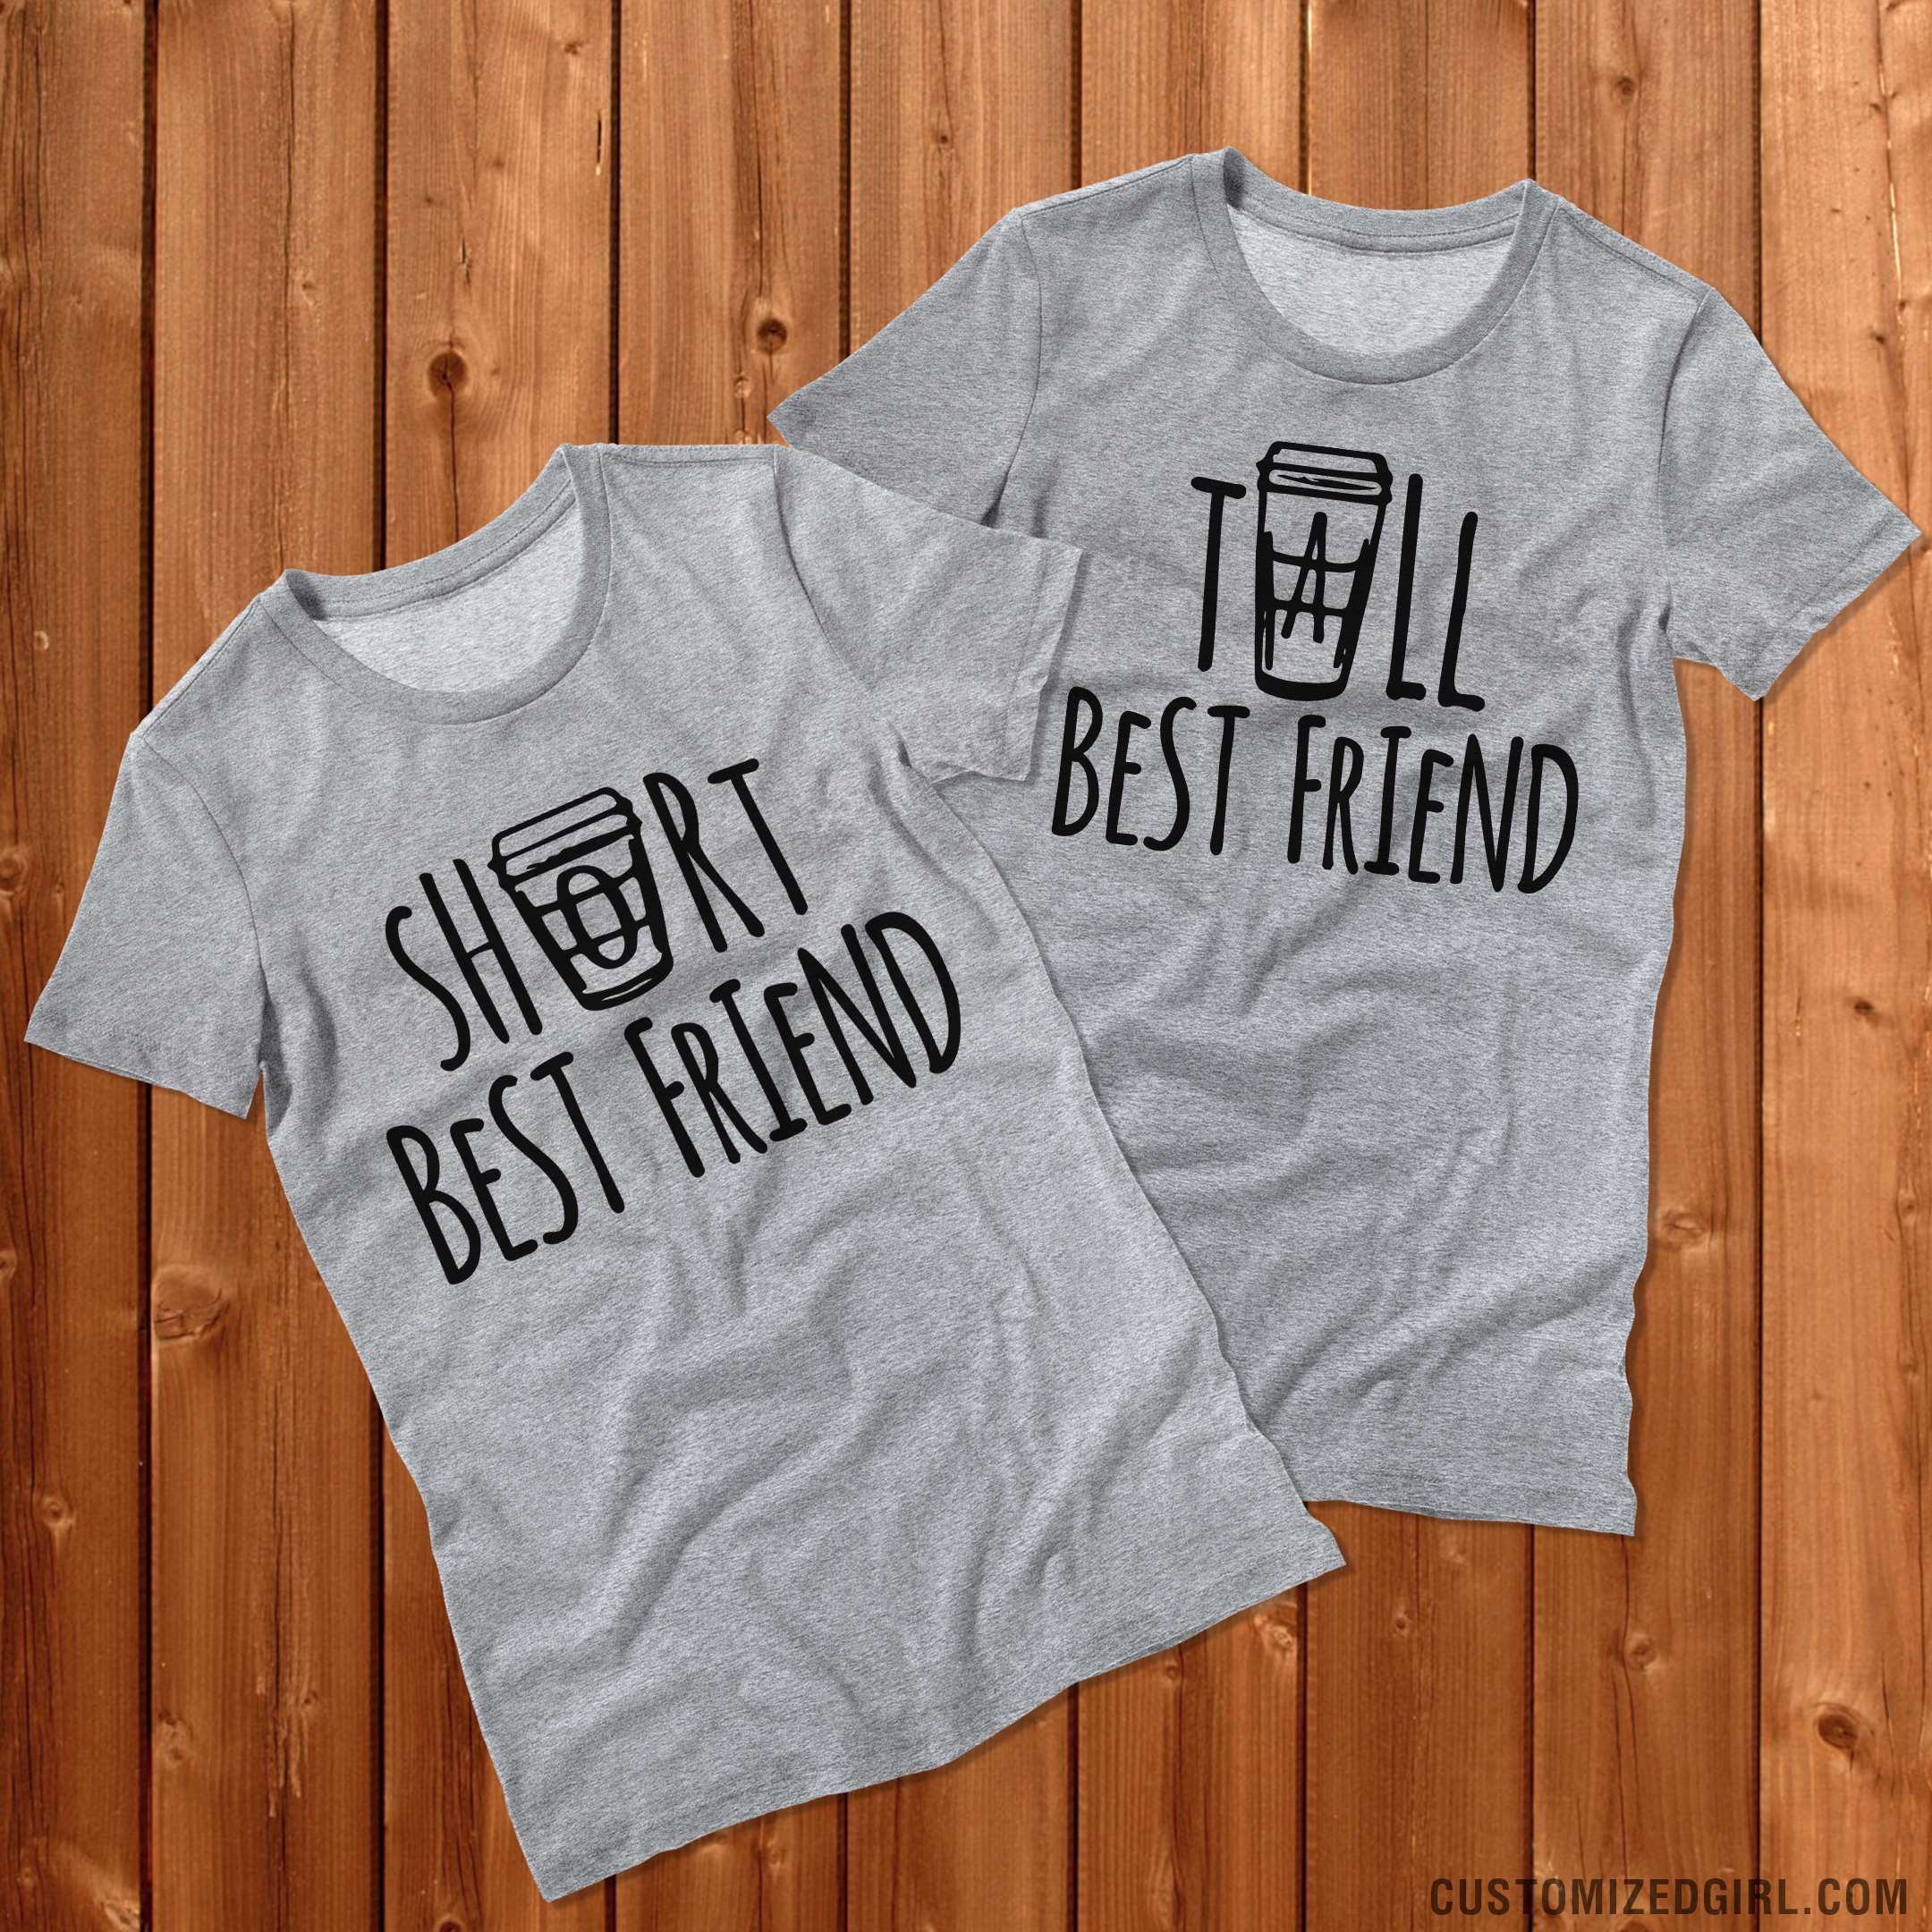 Matching Best Friends Shirts Archives Customizedgirl Blog